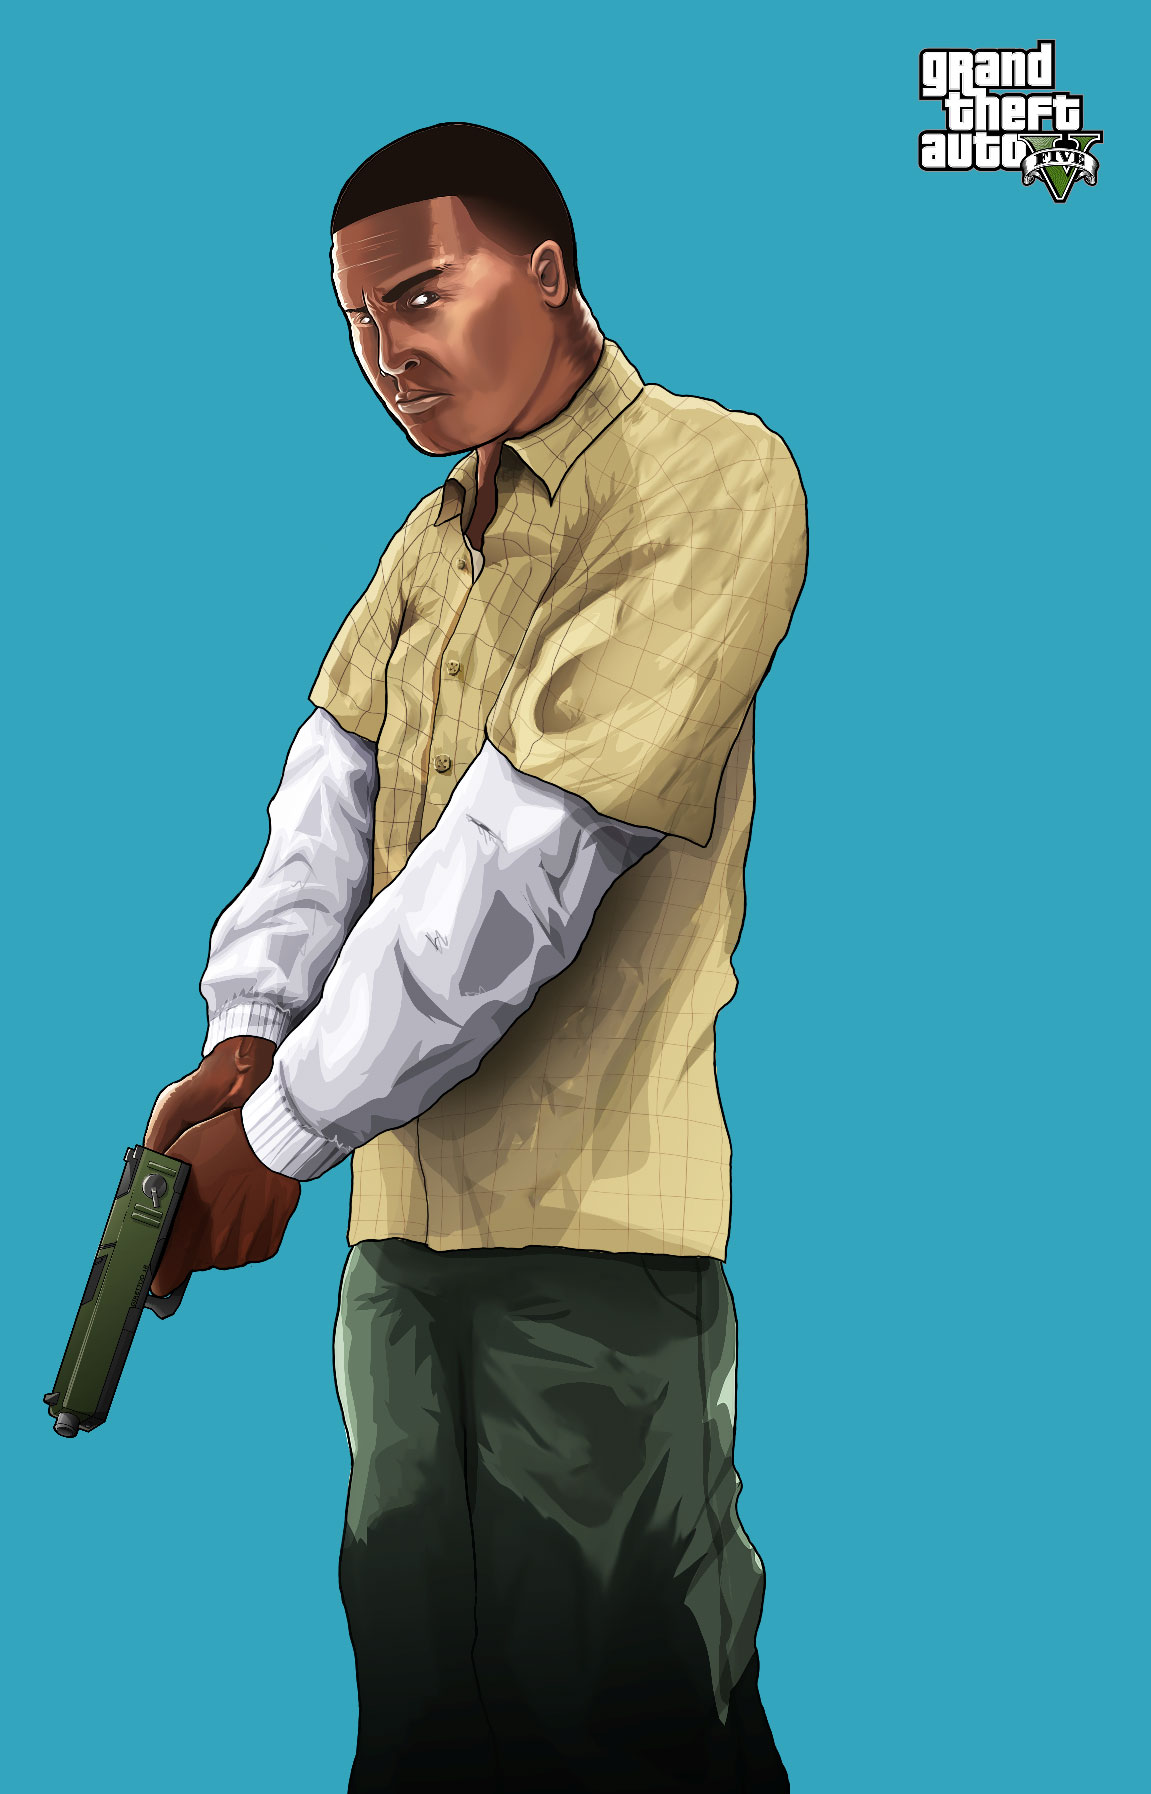 grand theft auto online wallpapers